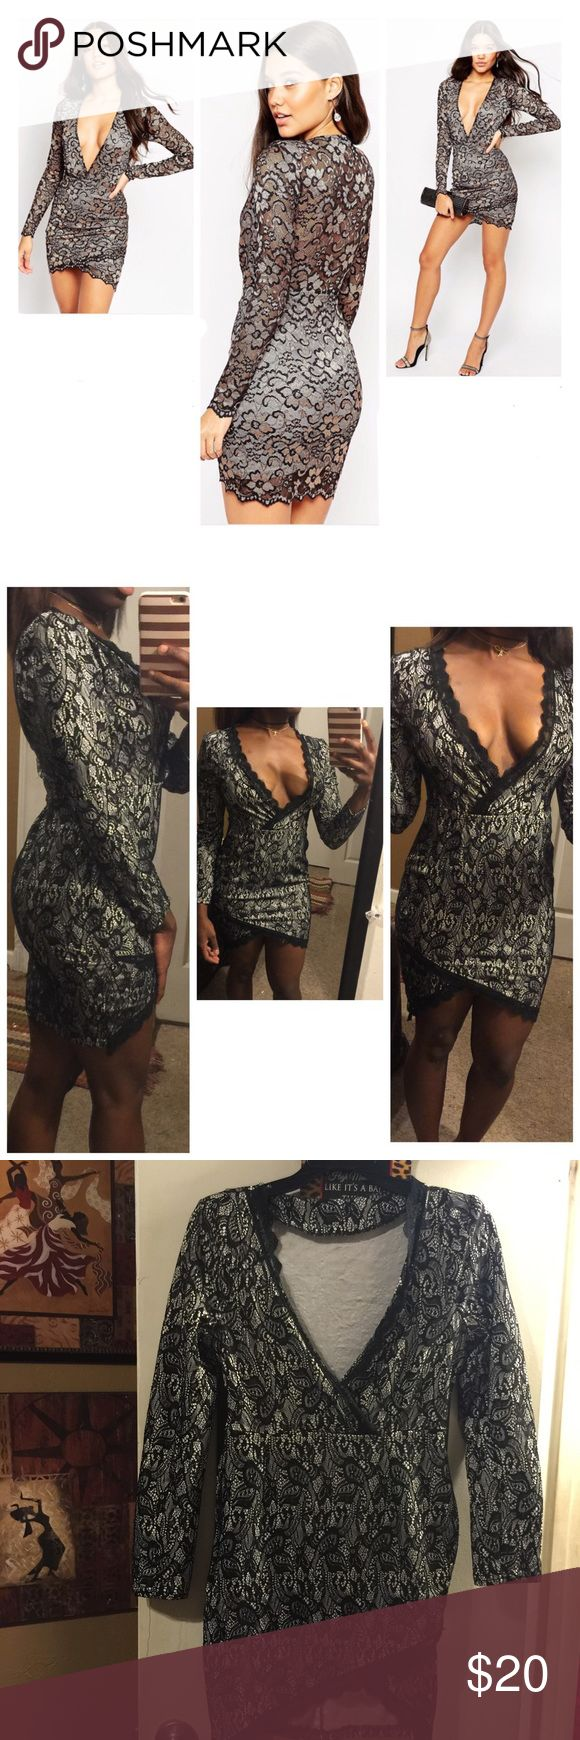 Black Lace Asymmetrical Hem Party Dress Never worn, bought at boutique. No brand or tag listed. Very sexy!! Fits a small ASOS Dresses